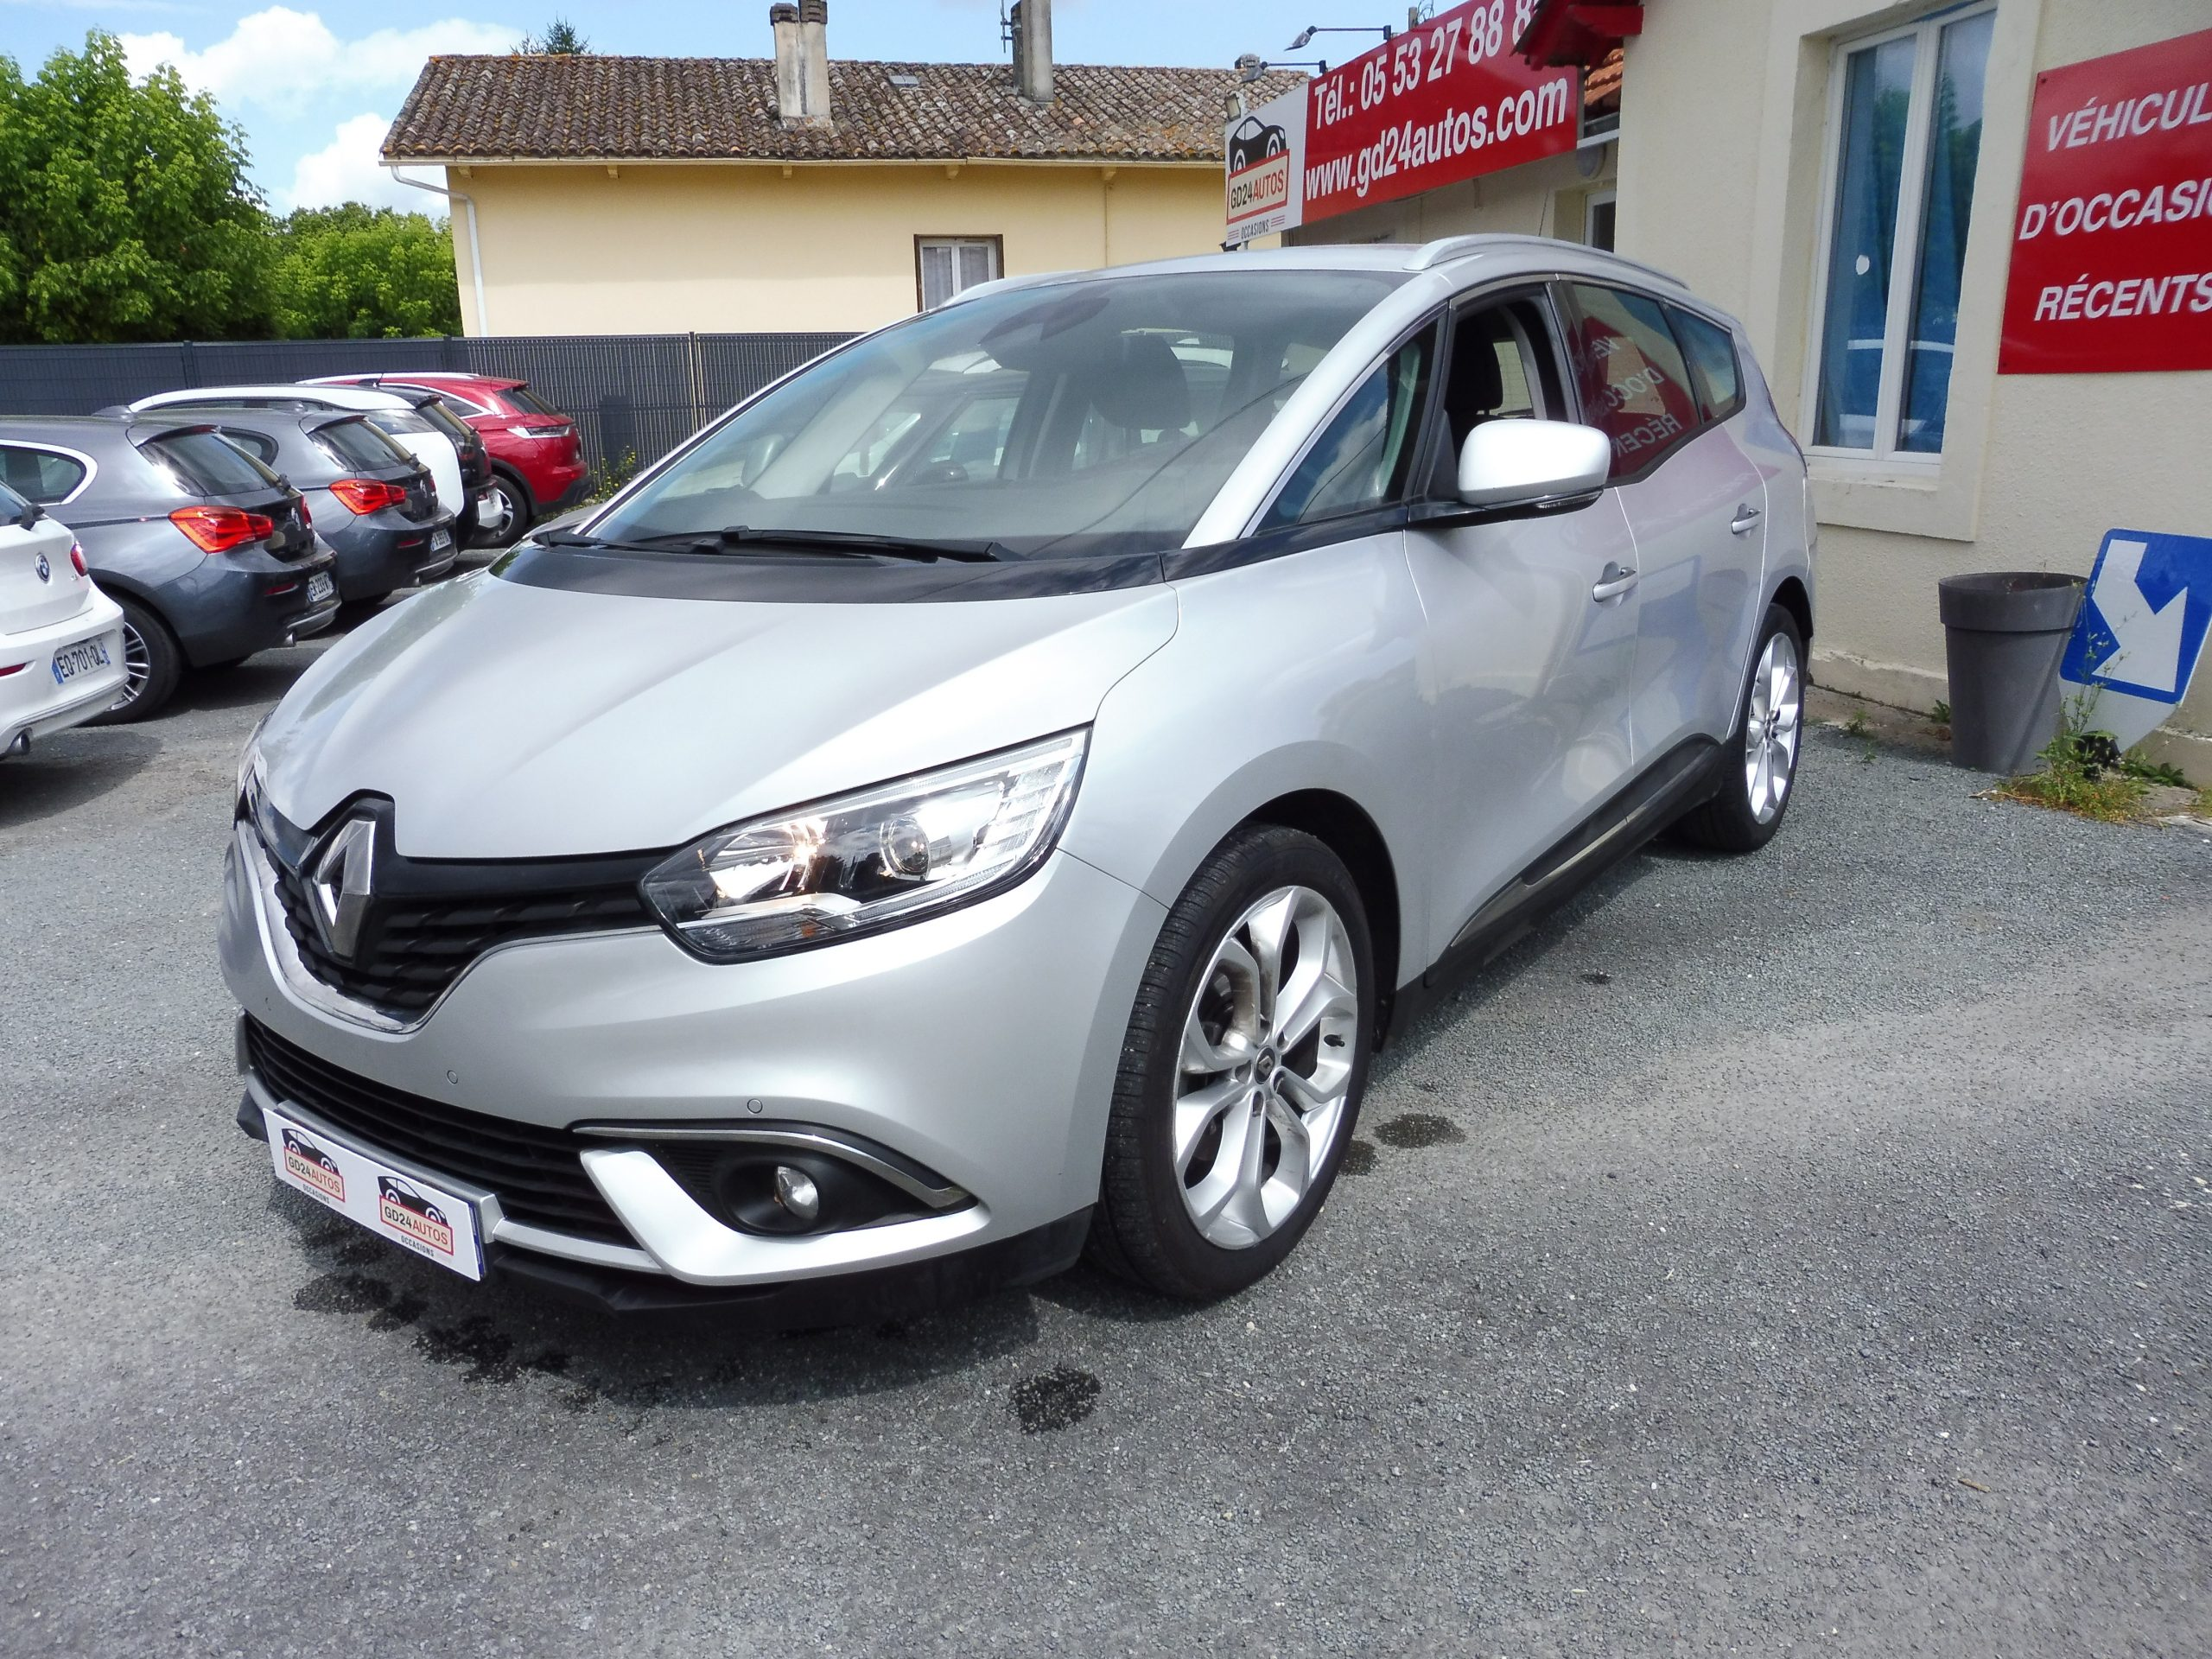 RENAULTGrand Scénic dCi 110 Energy Business 7 places bv6